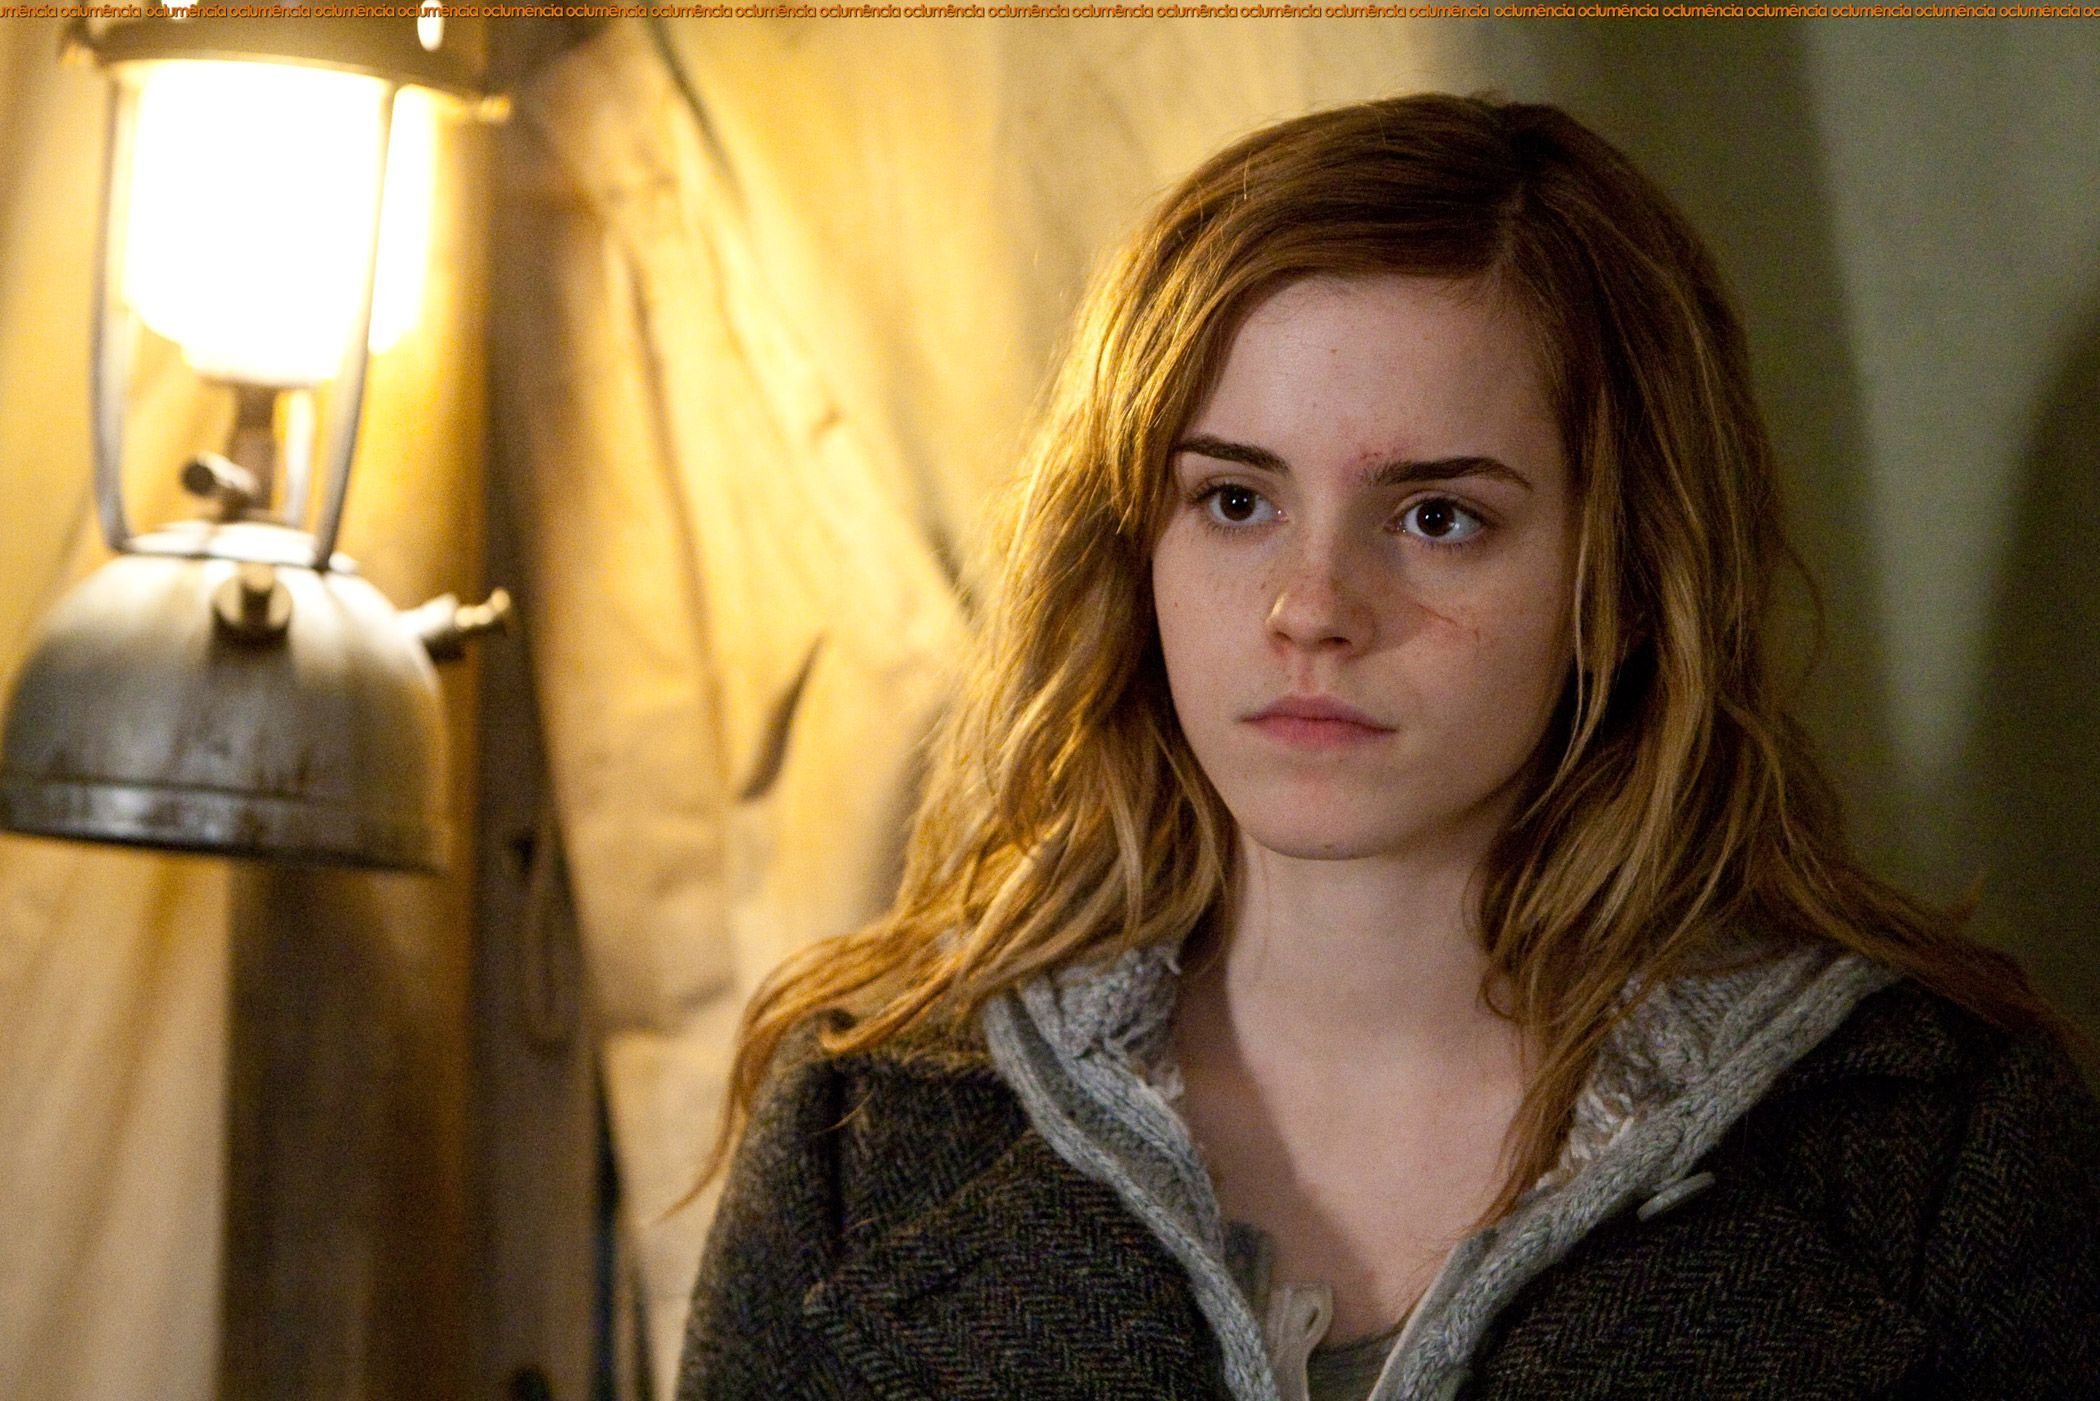 Emma Watson Harry Potter And The Deathly Hallows Part 2